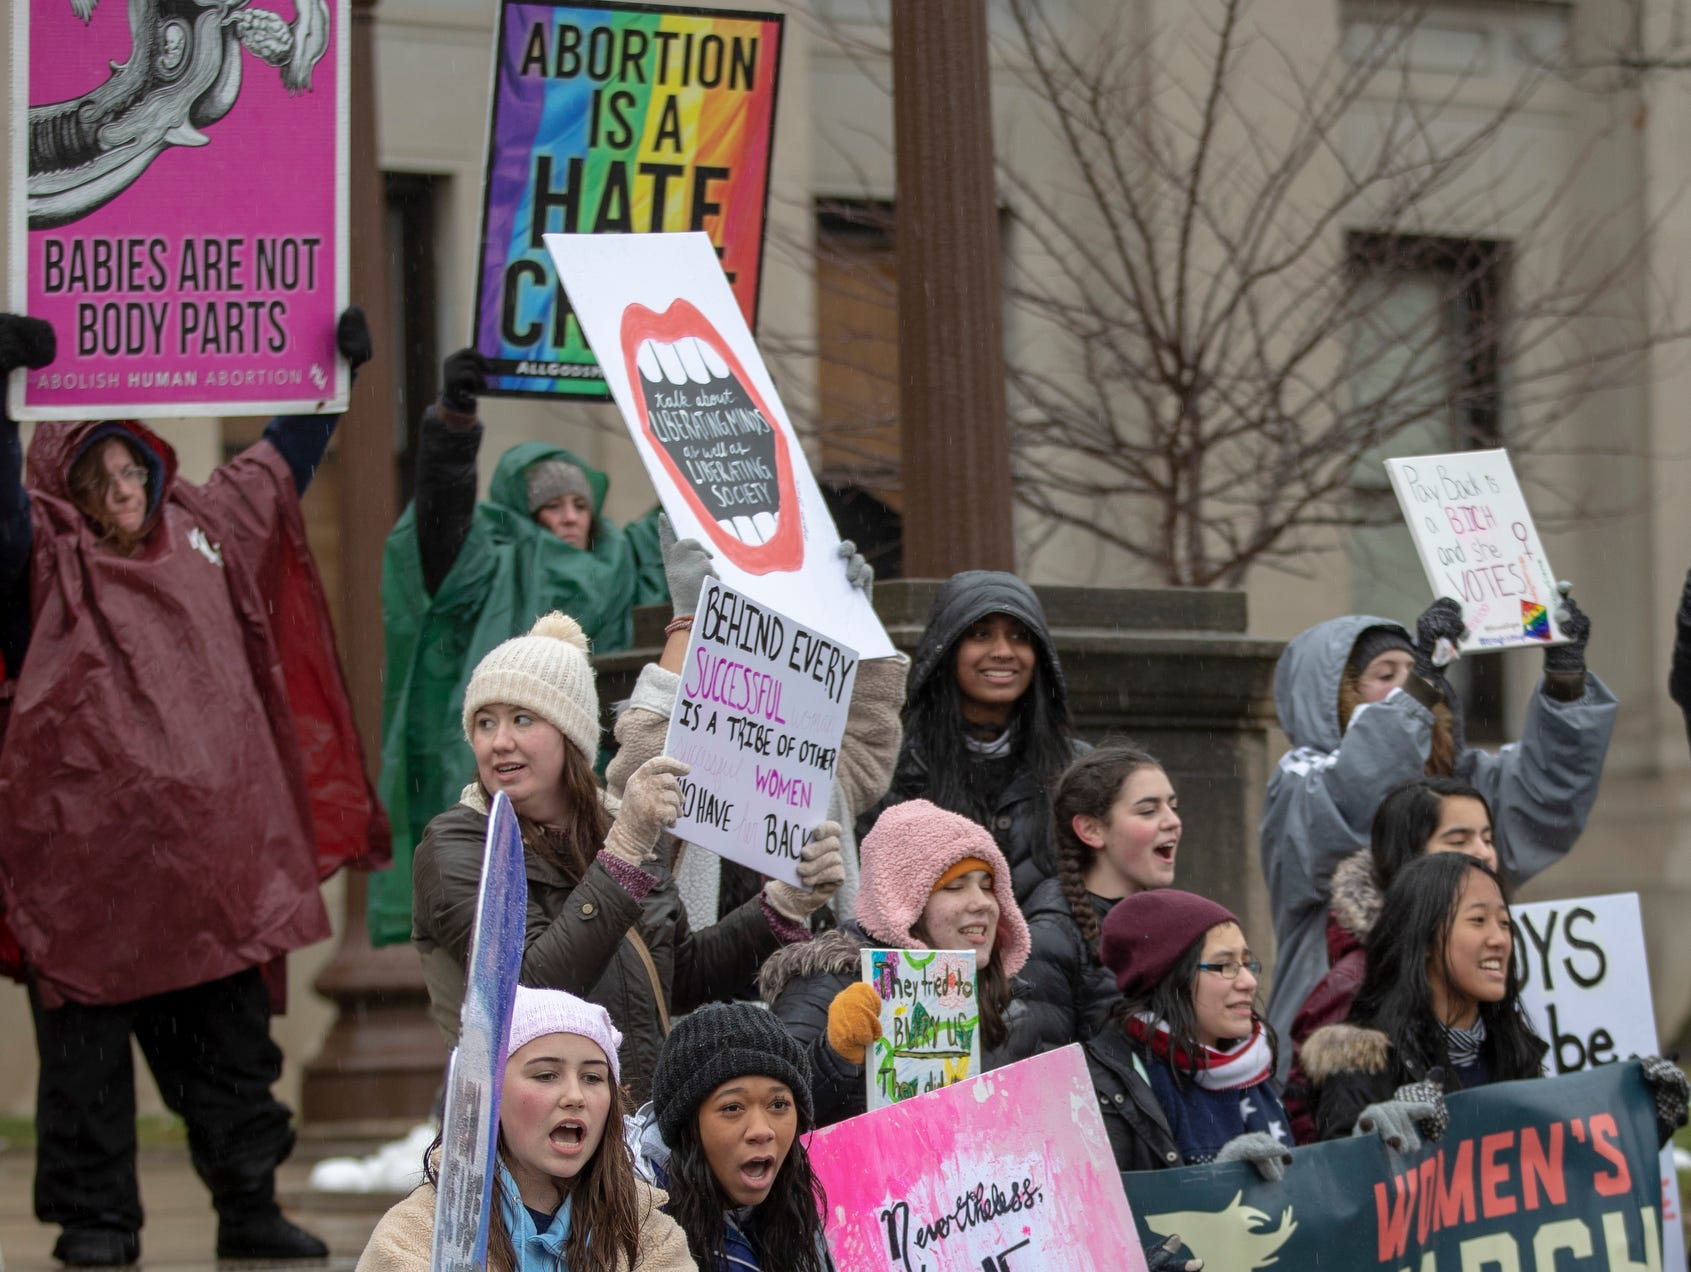 New York expanded abortion access. Now Indiana lawmakers are pushing for stricter laws